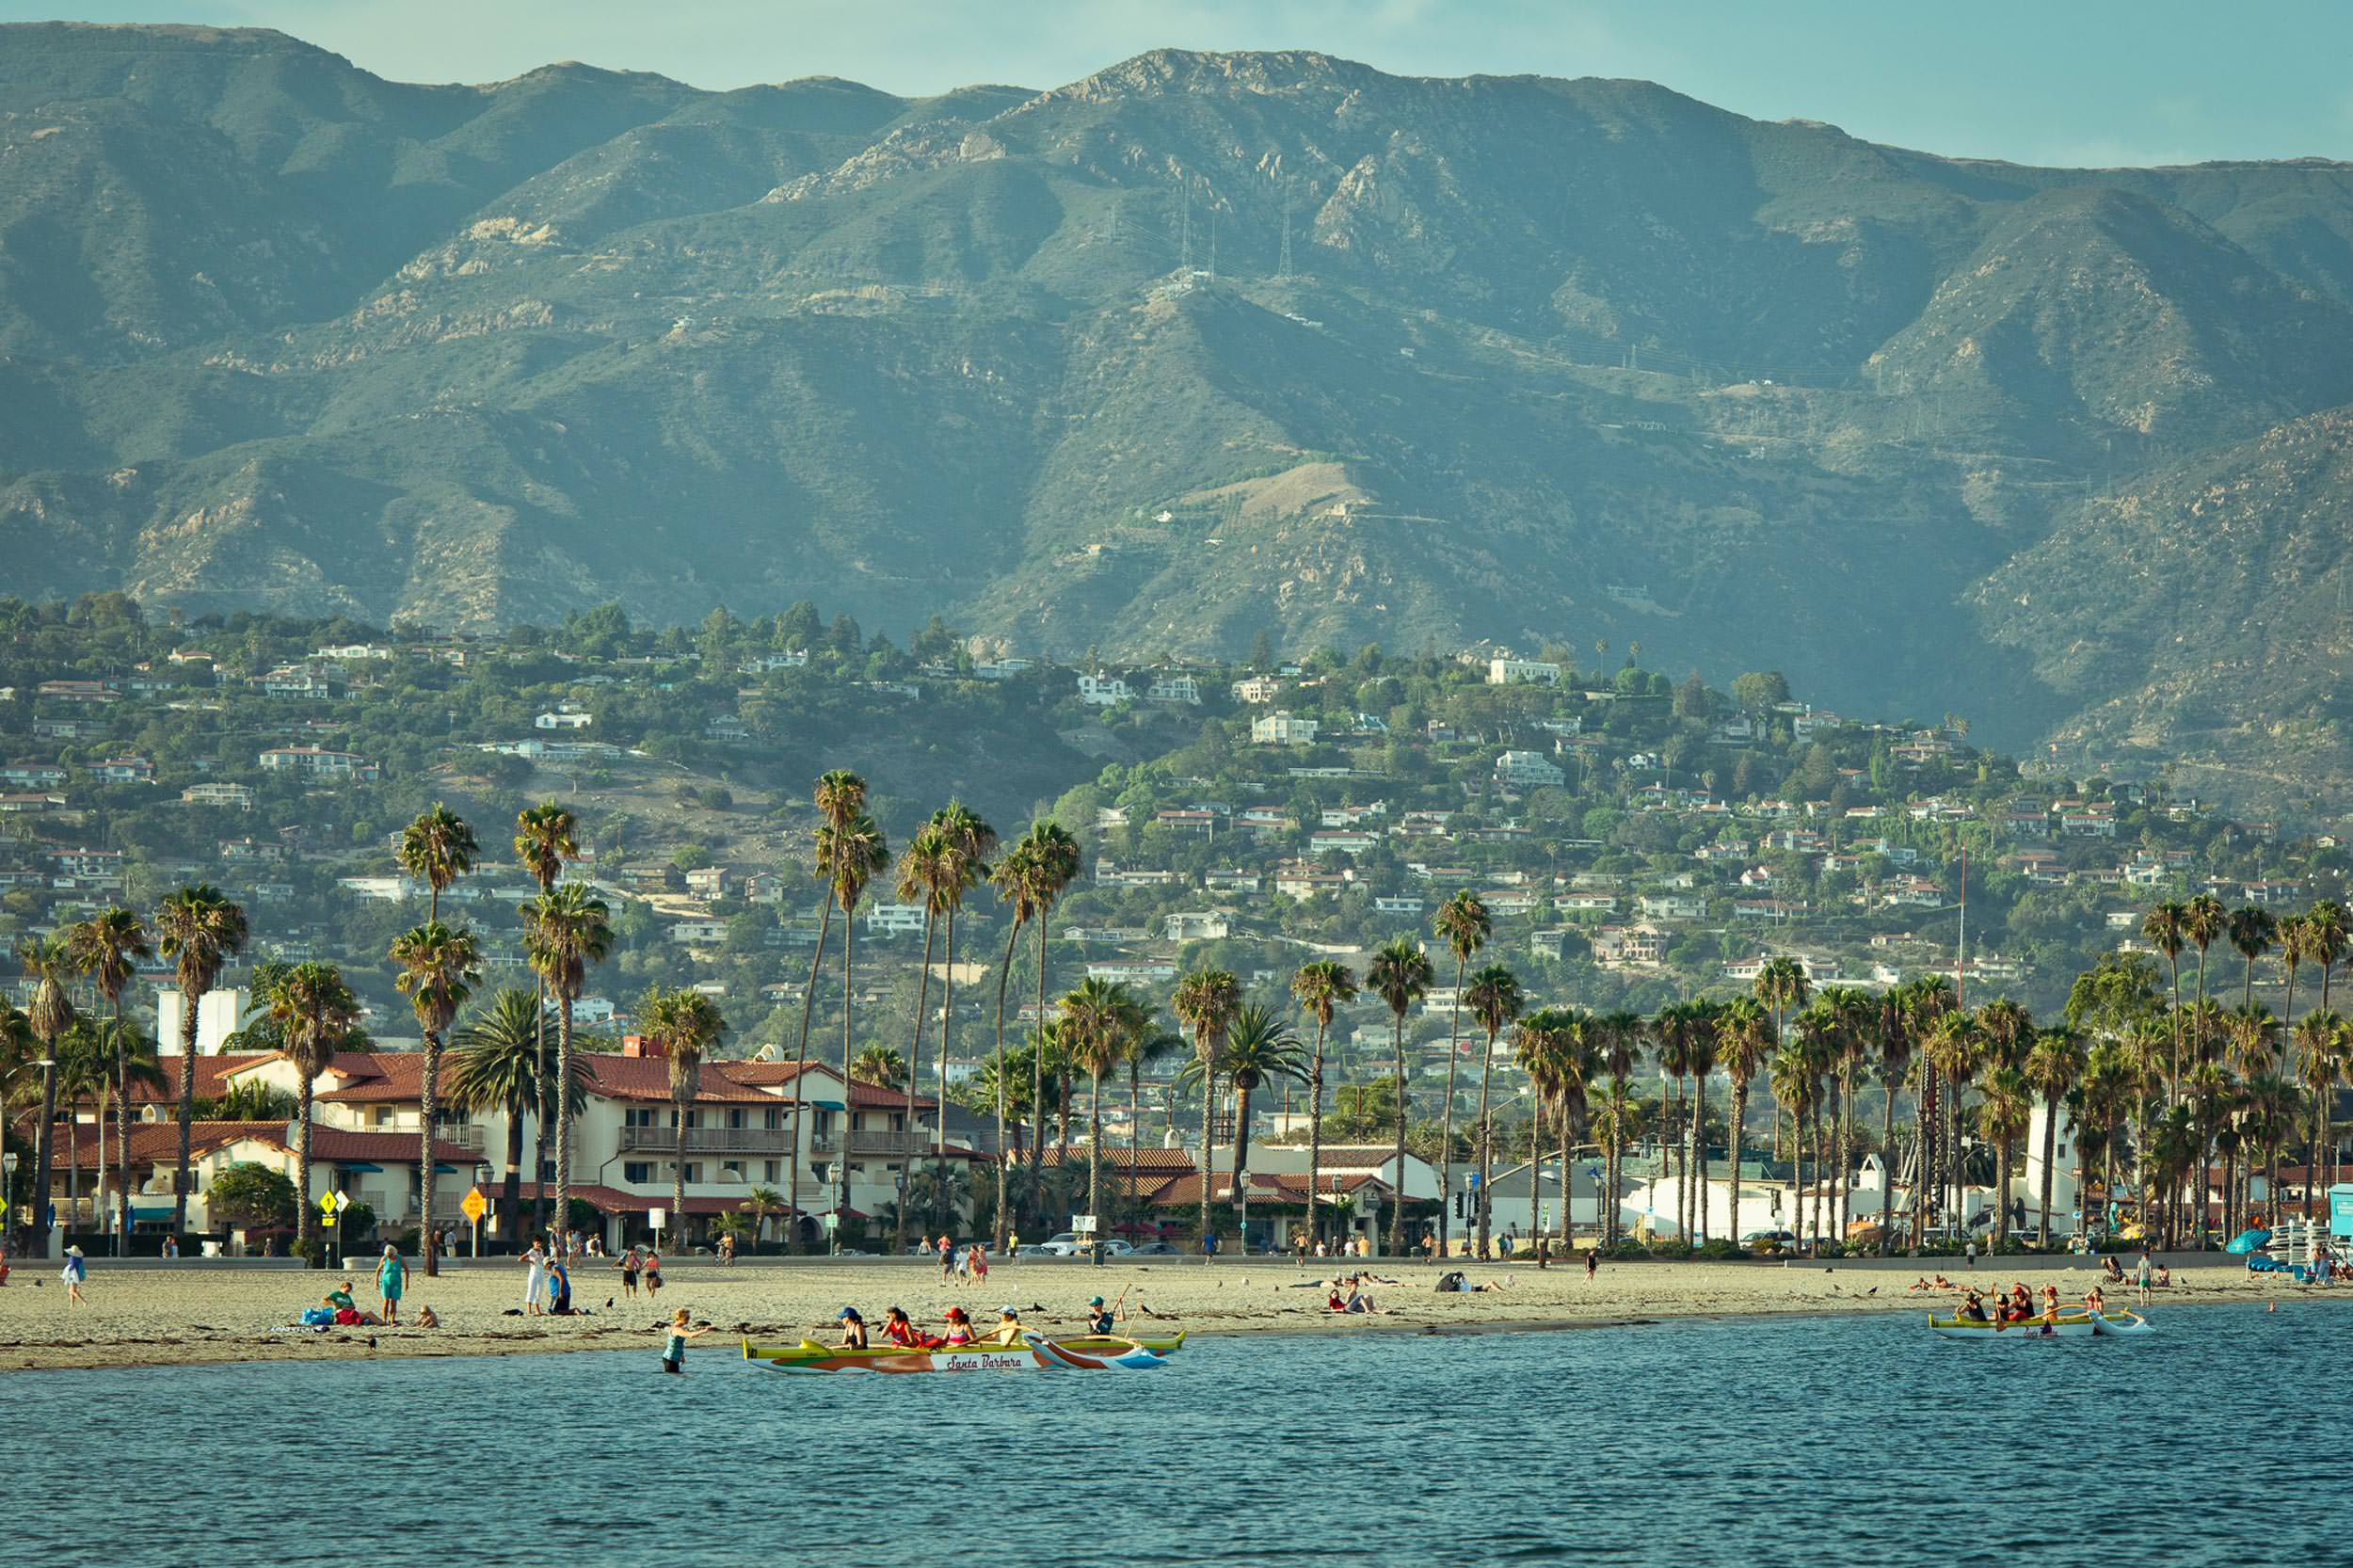 Santa Barbara Outdoor Activities – Santa Barbara Tourist Map